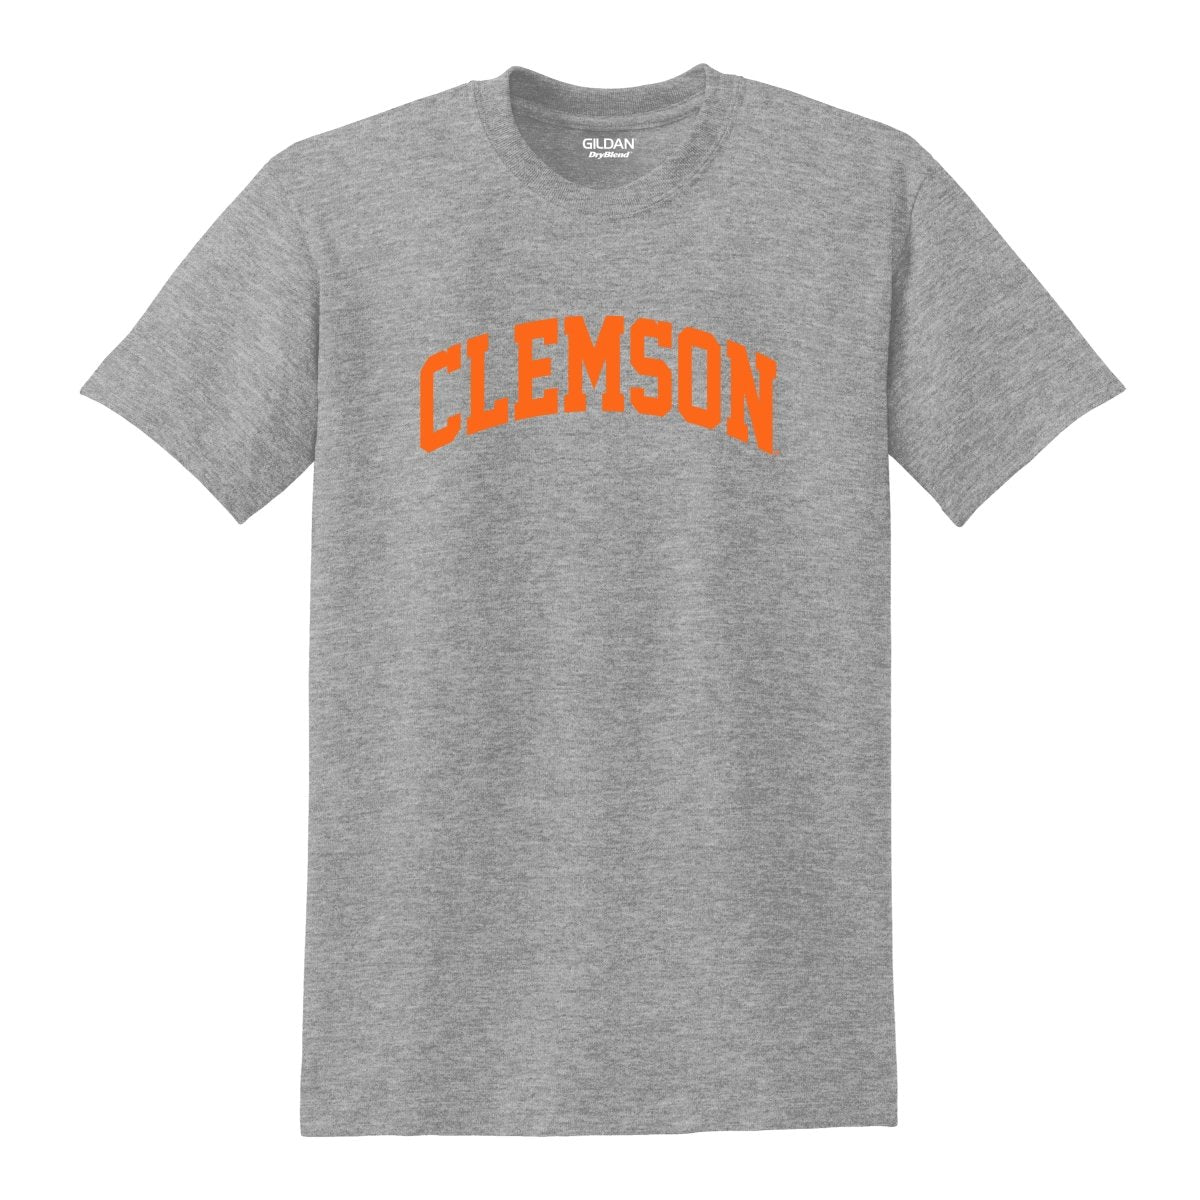 Youth Arch Clemson Tee - Mr. Knickerbocker